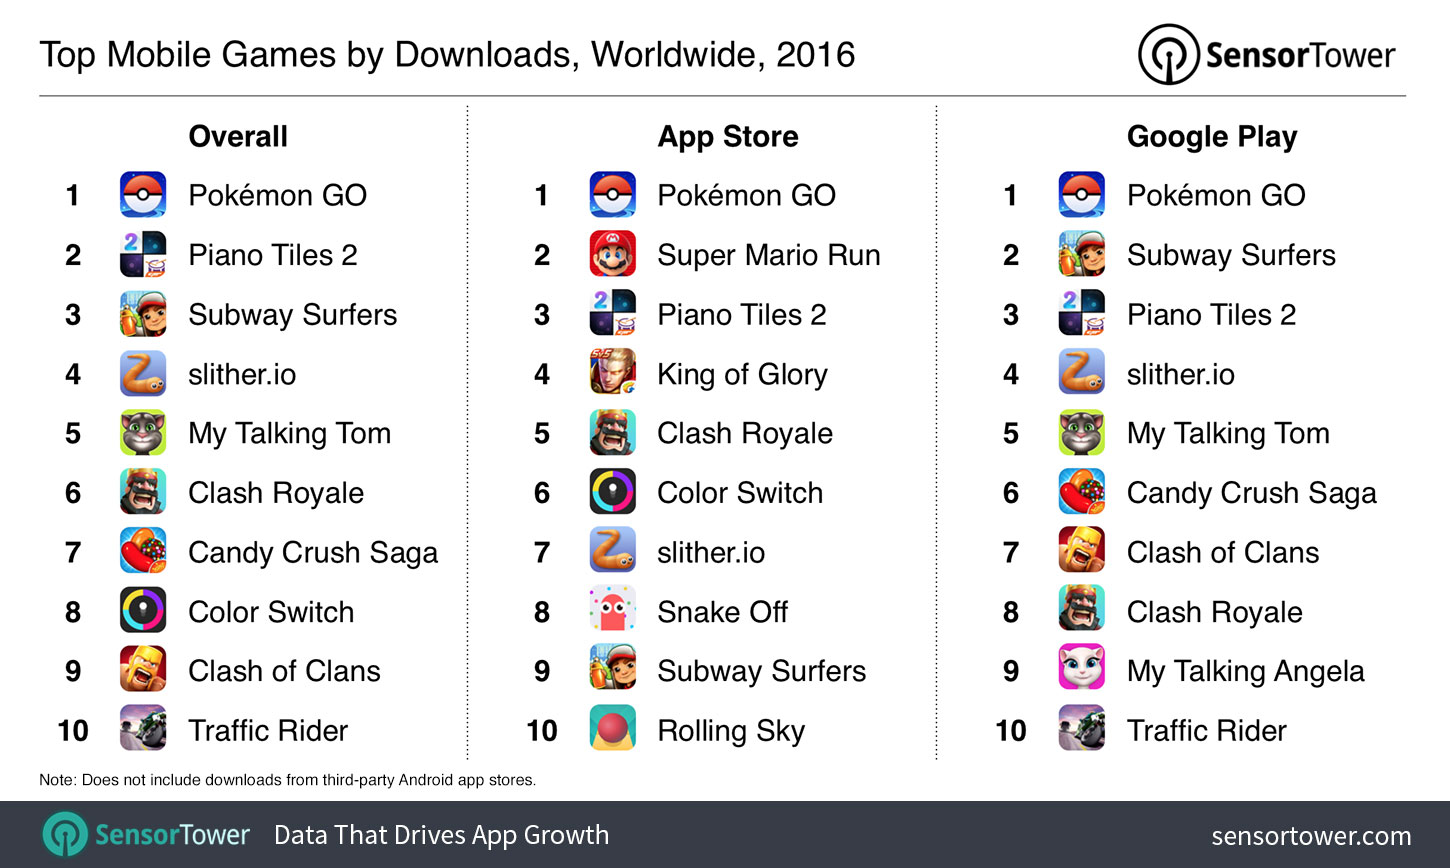 Top Mobile Games of 2016: Pokémon GO Conquered Clash Royale